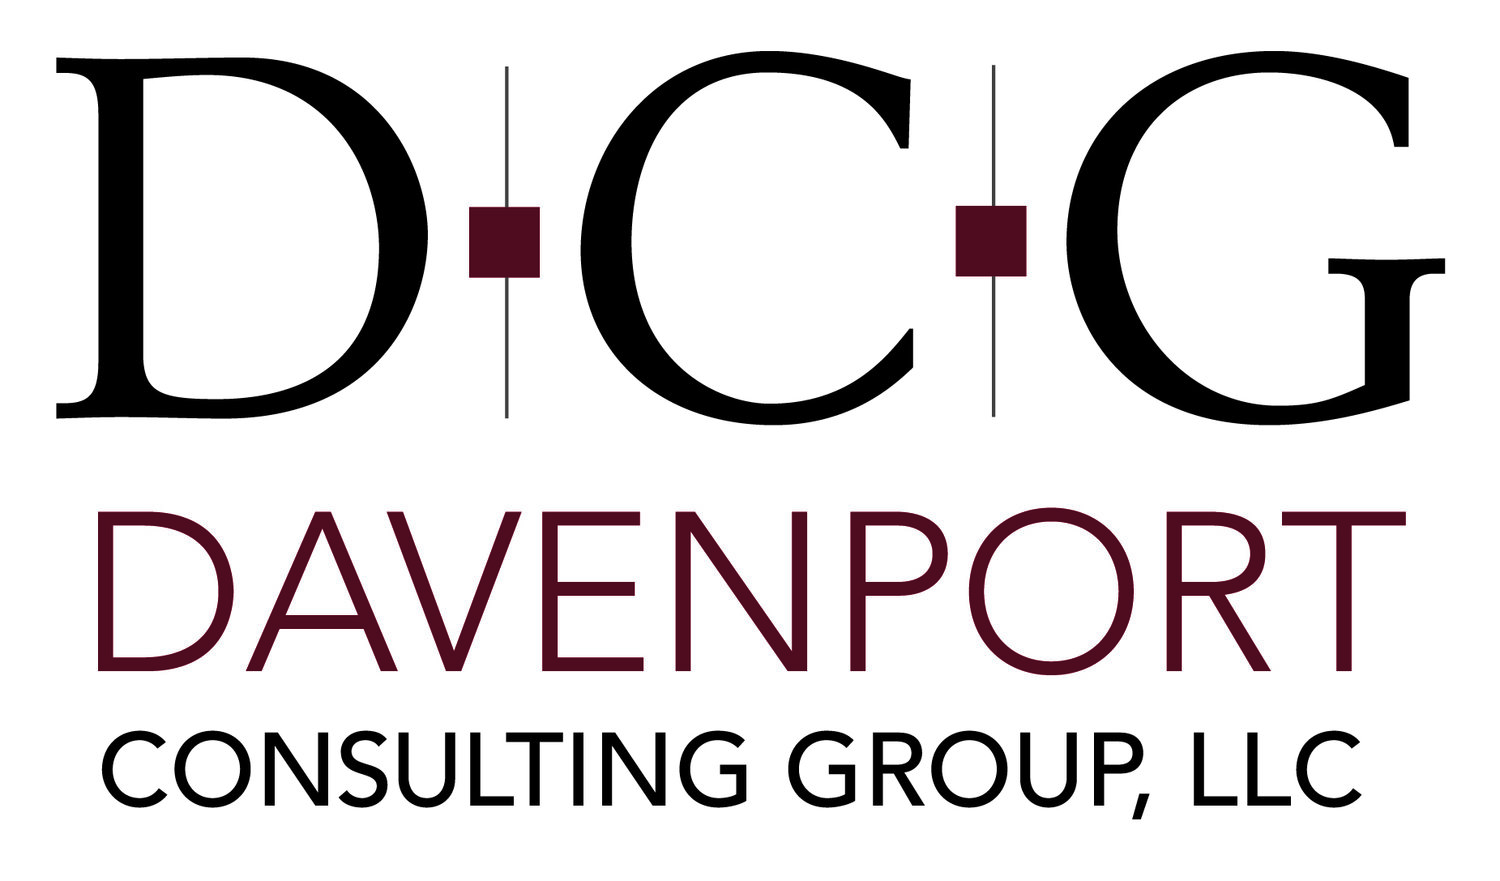 Davenport Consulting Group LLC